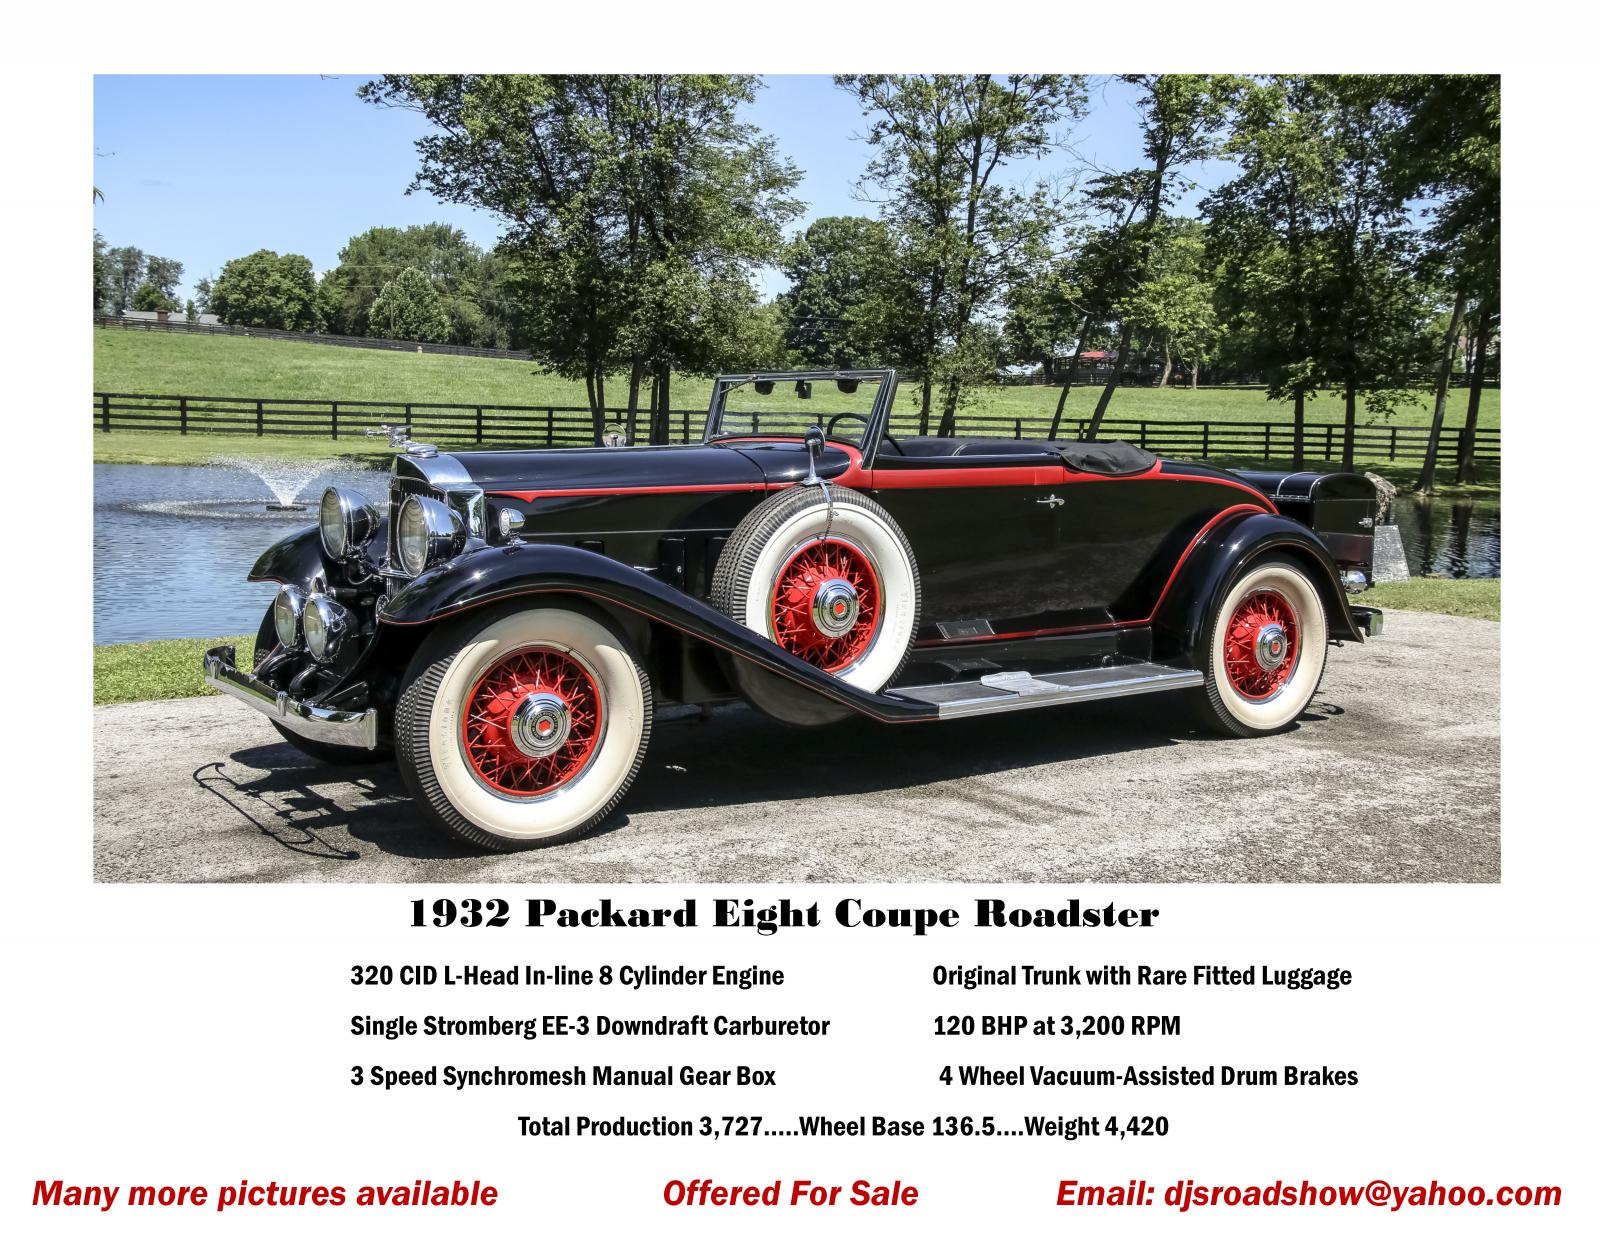 This automobile is in wonderful condition with rare fitted lugauge.